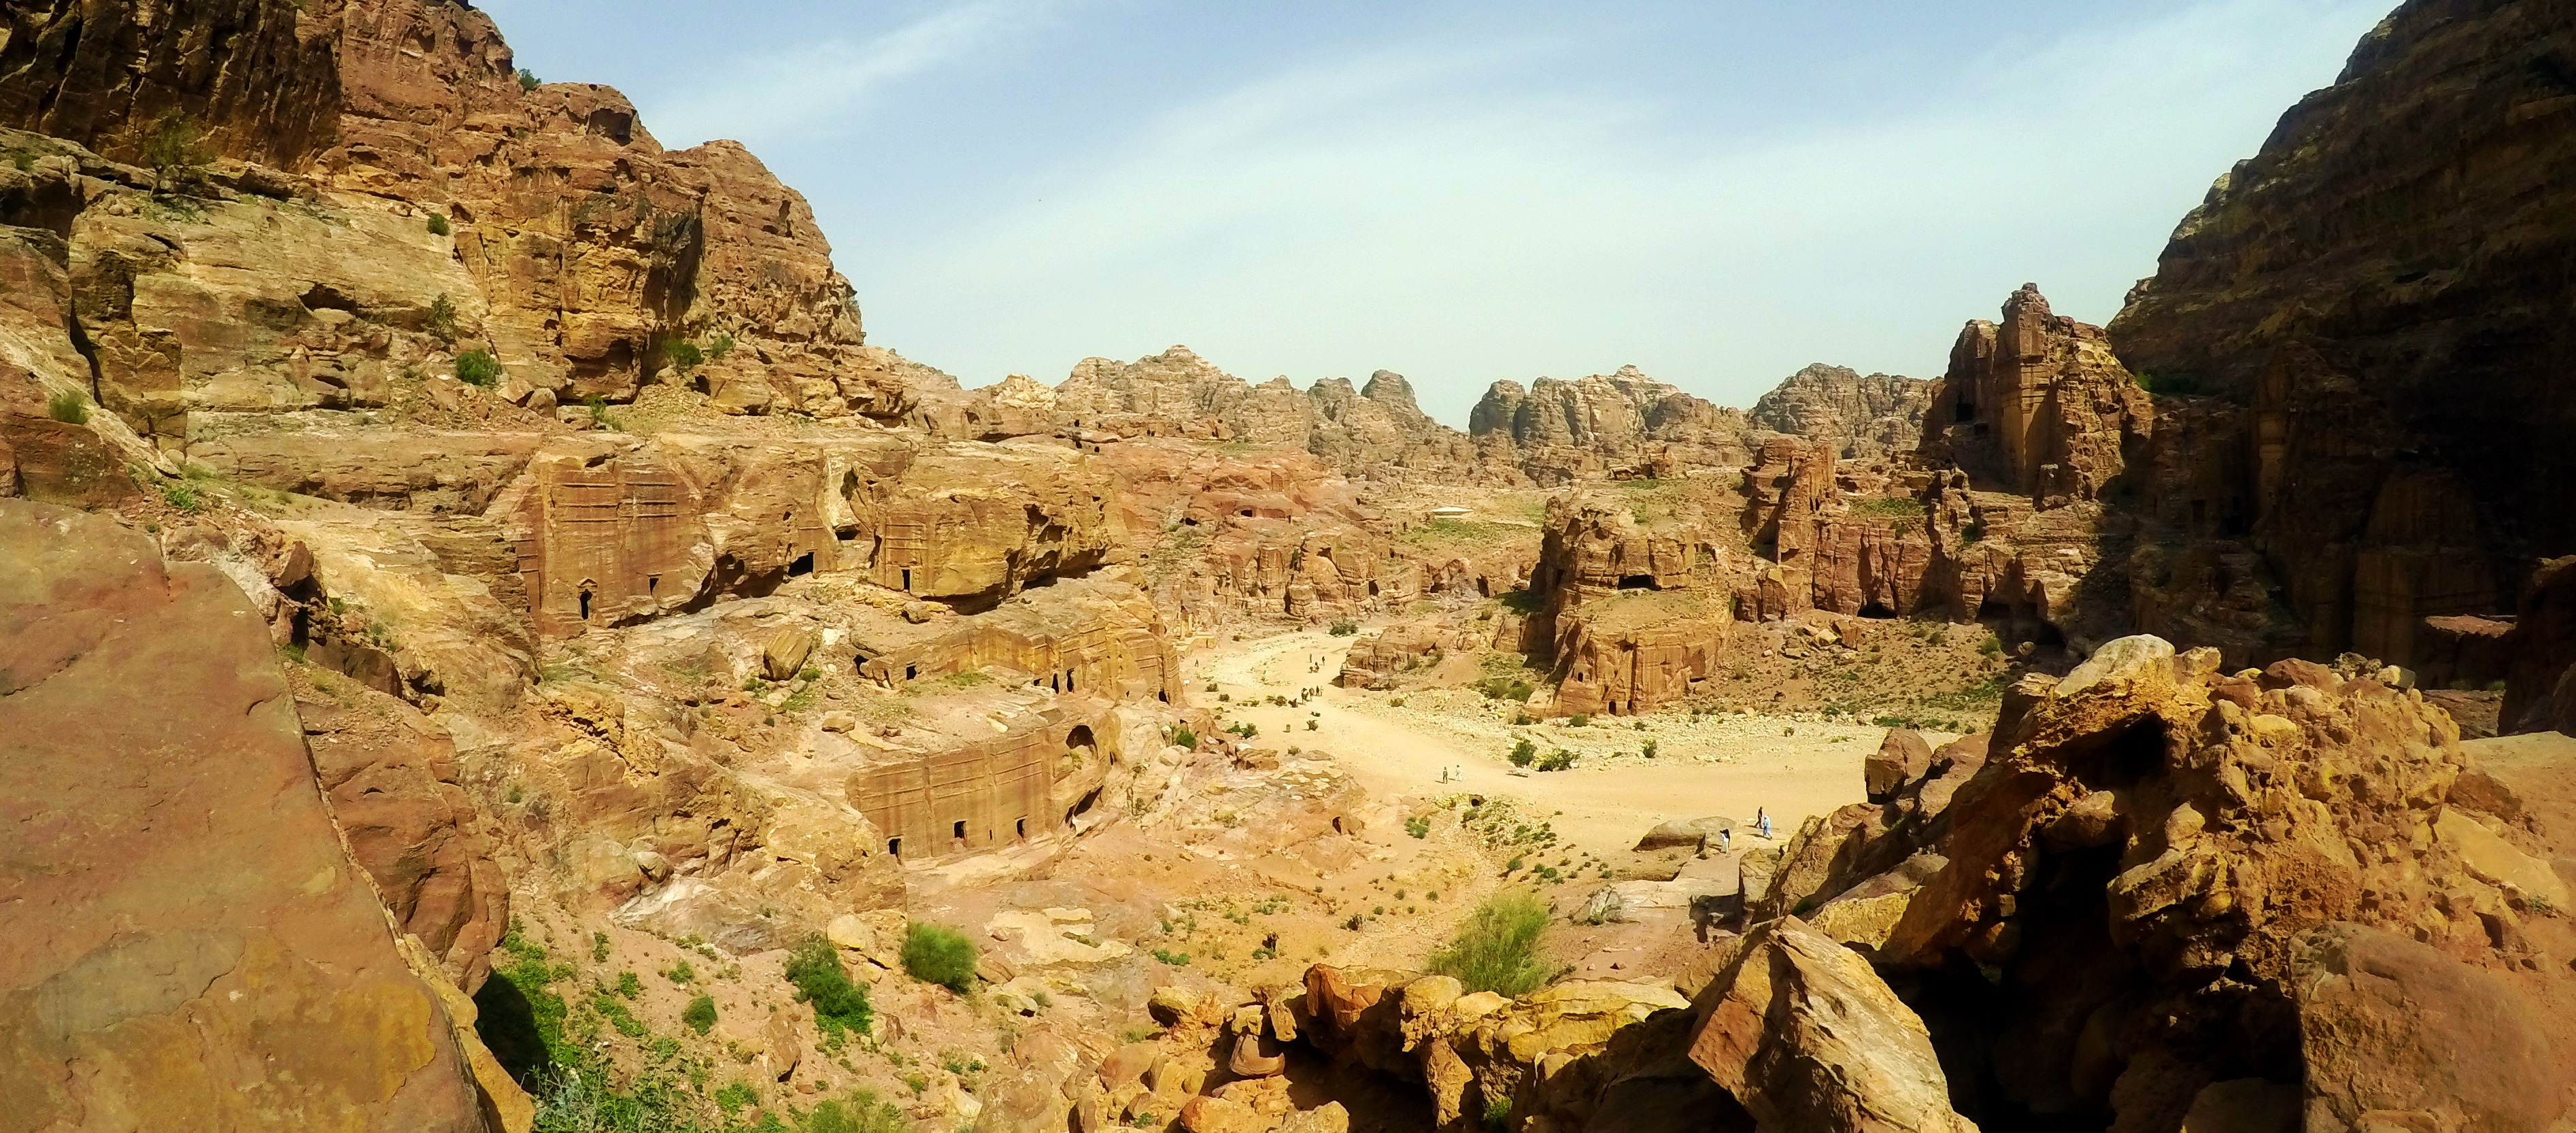 Photo Essay: Petra, Jordan